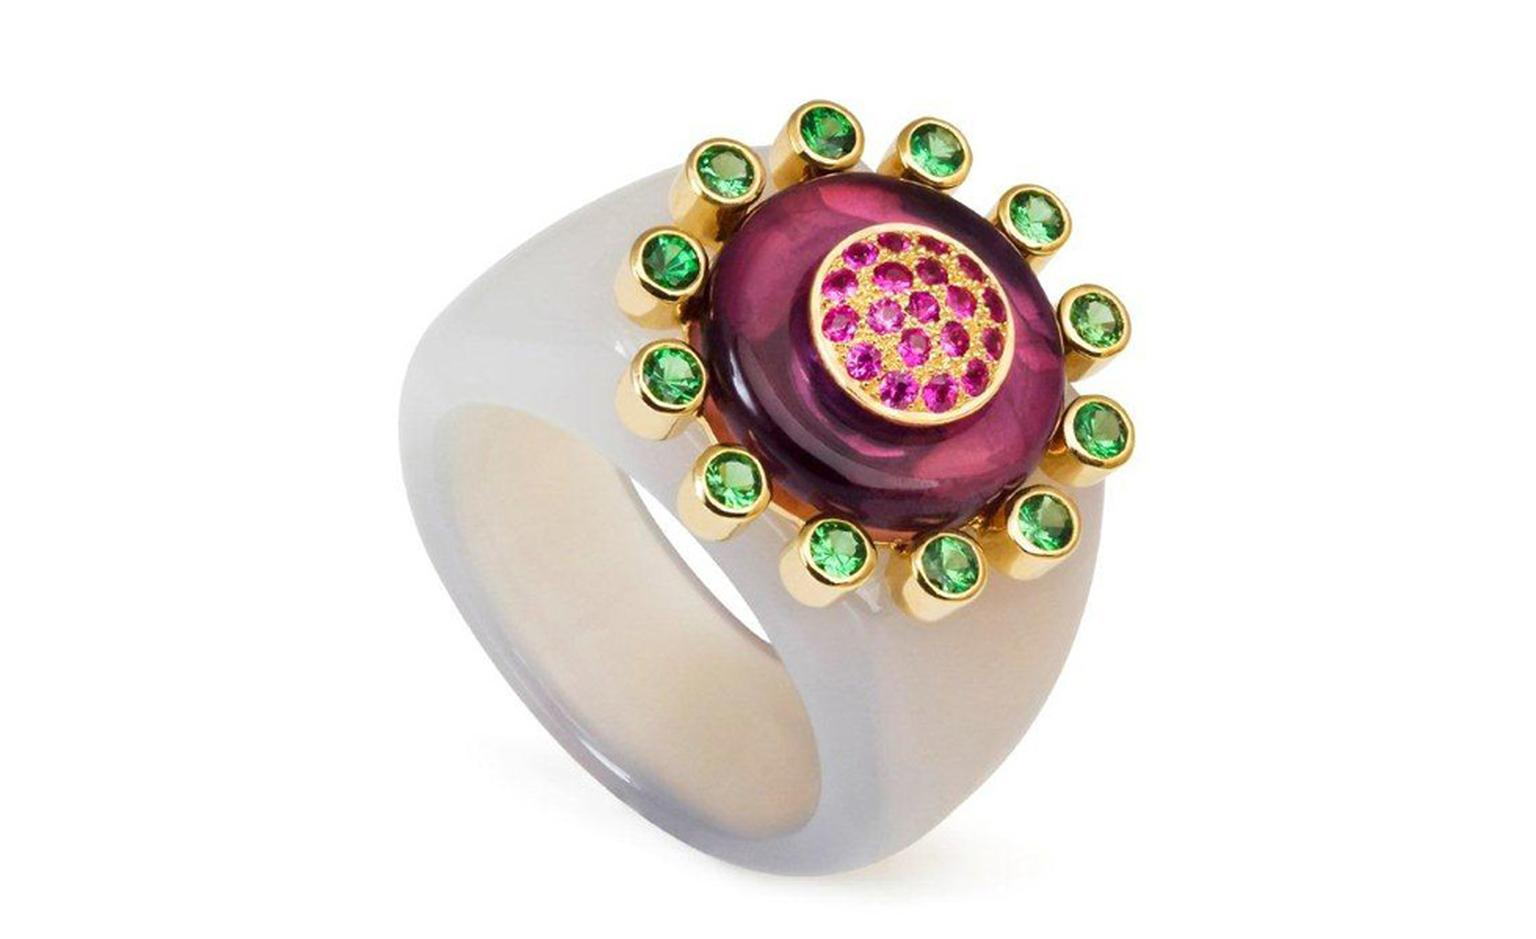 Amanda Brighton Princess of the Woods agate ring set with tsavorite, amethyst and hot pink sapphires. £2,300